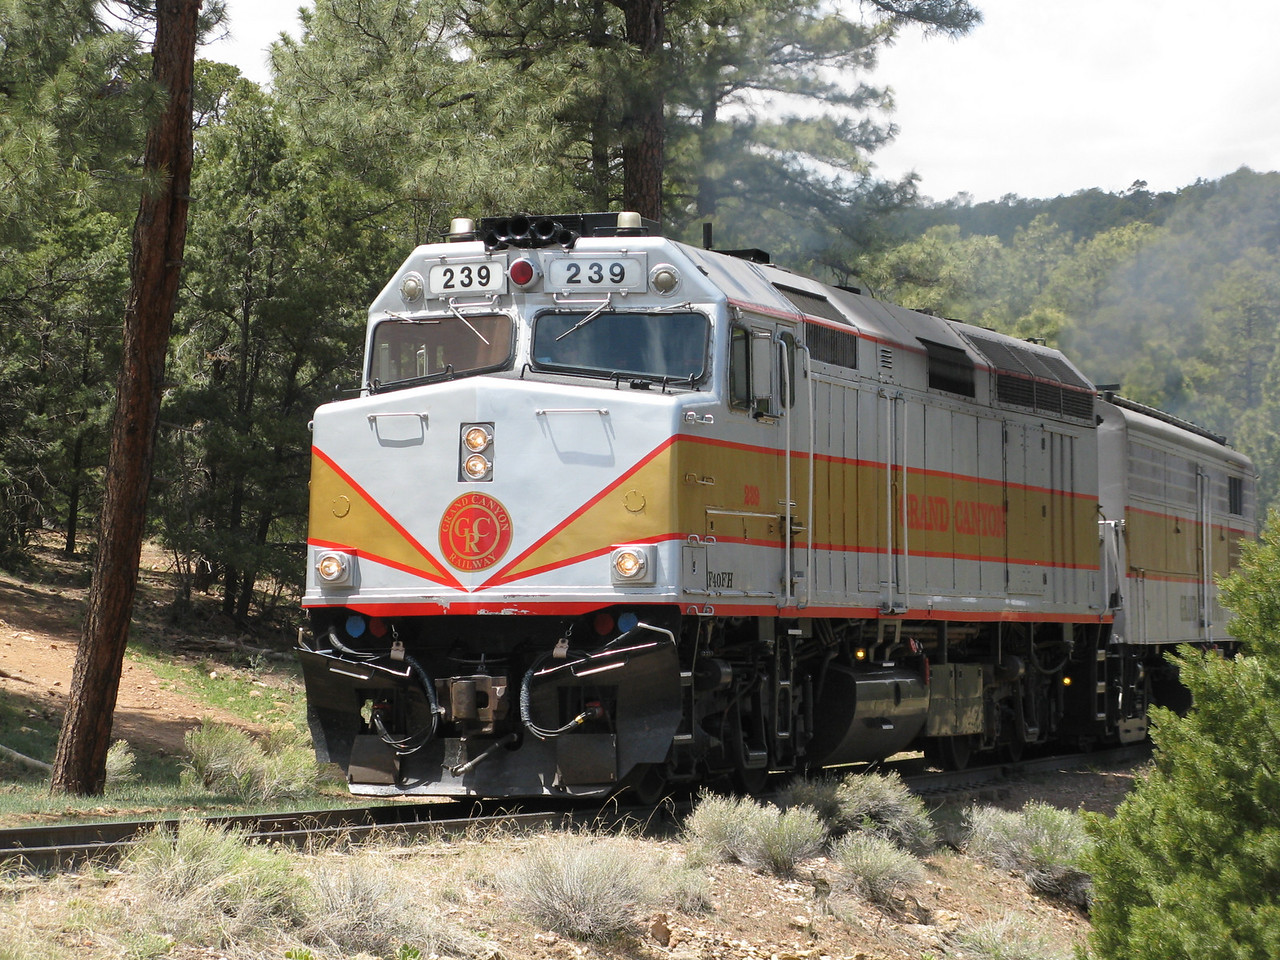 Back up on top in Grand Canyon Village, the Grand Canyon train arrives from Williams.